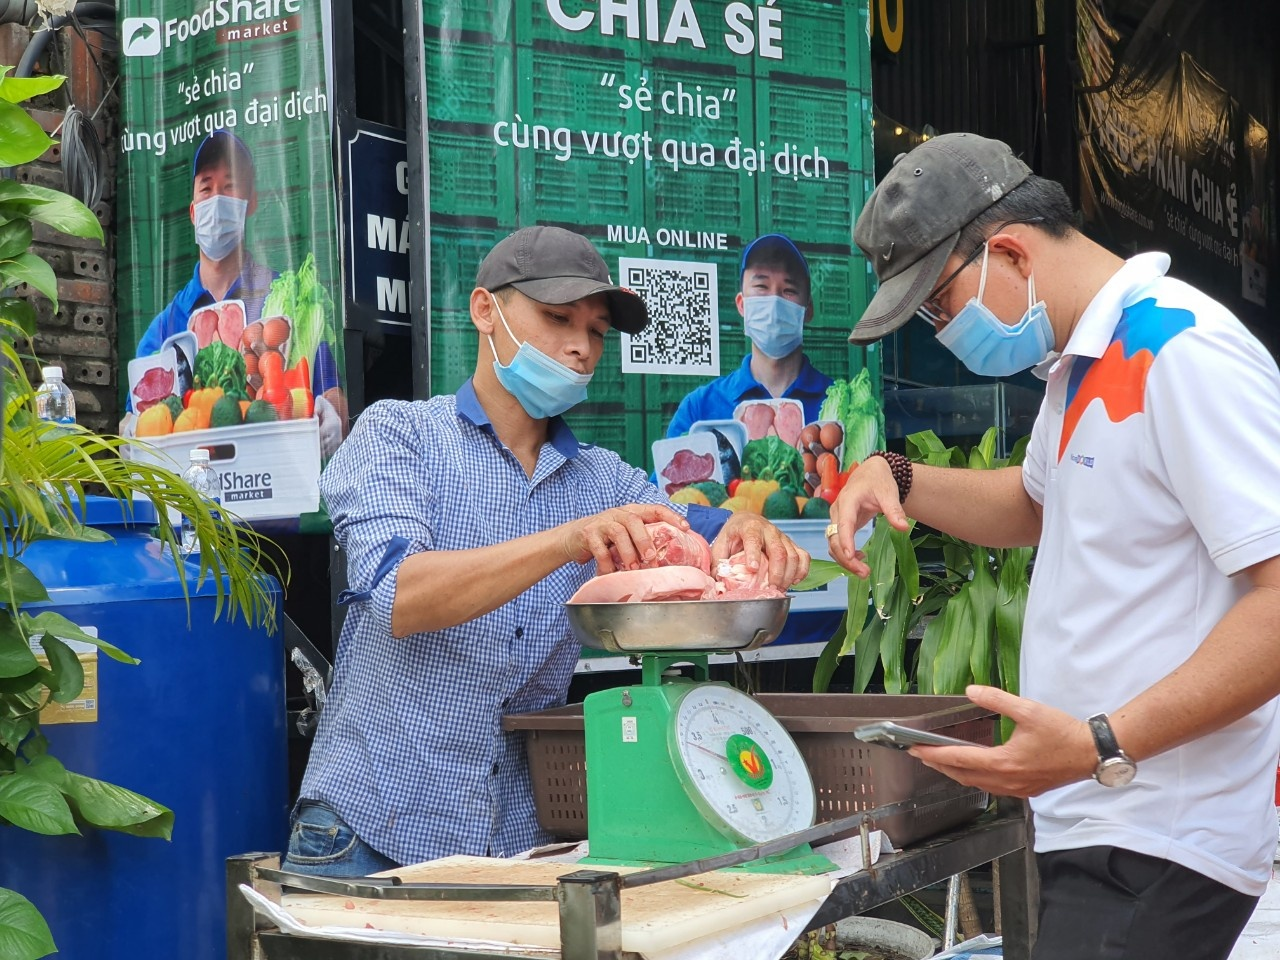 Ho Chi Minh City allows certain businesses to open until 9pm